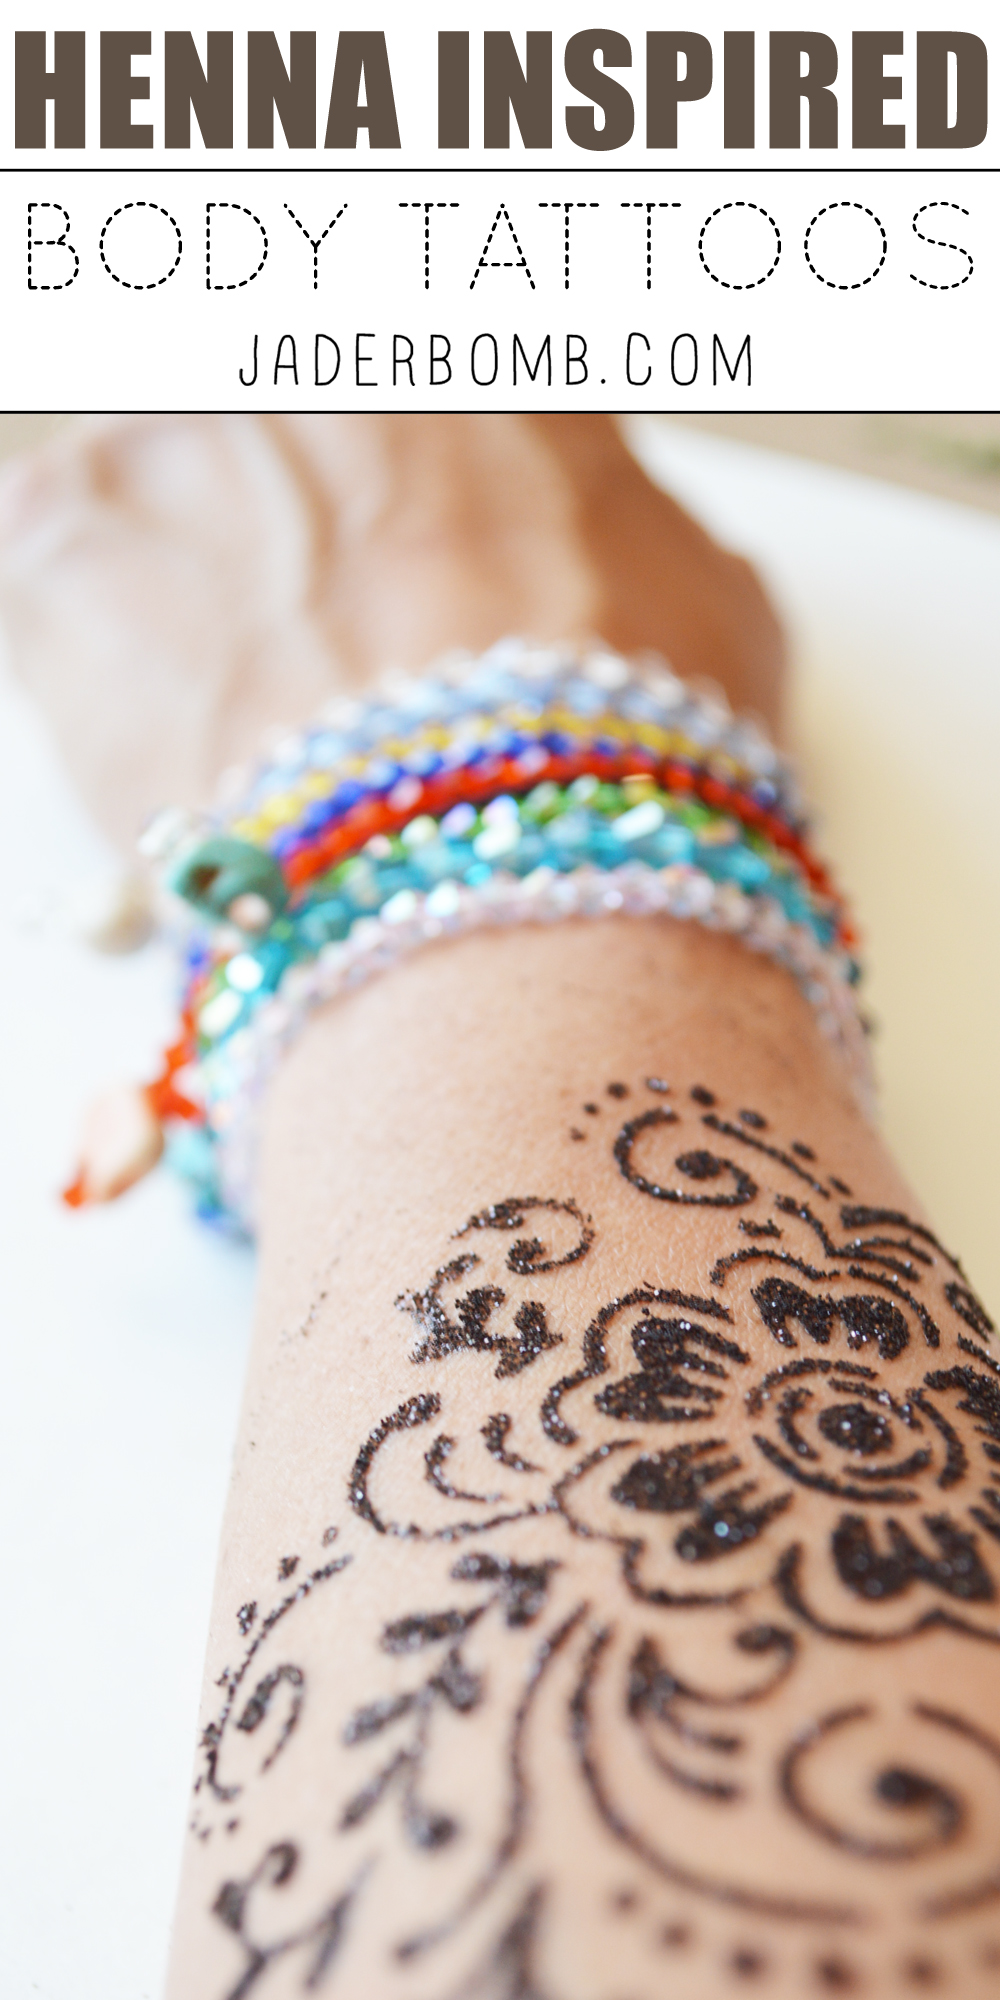 Henna Inspired Body Tattoos